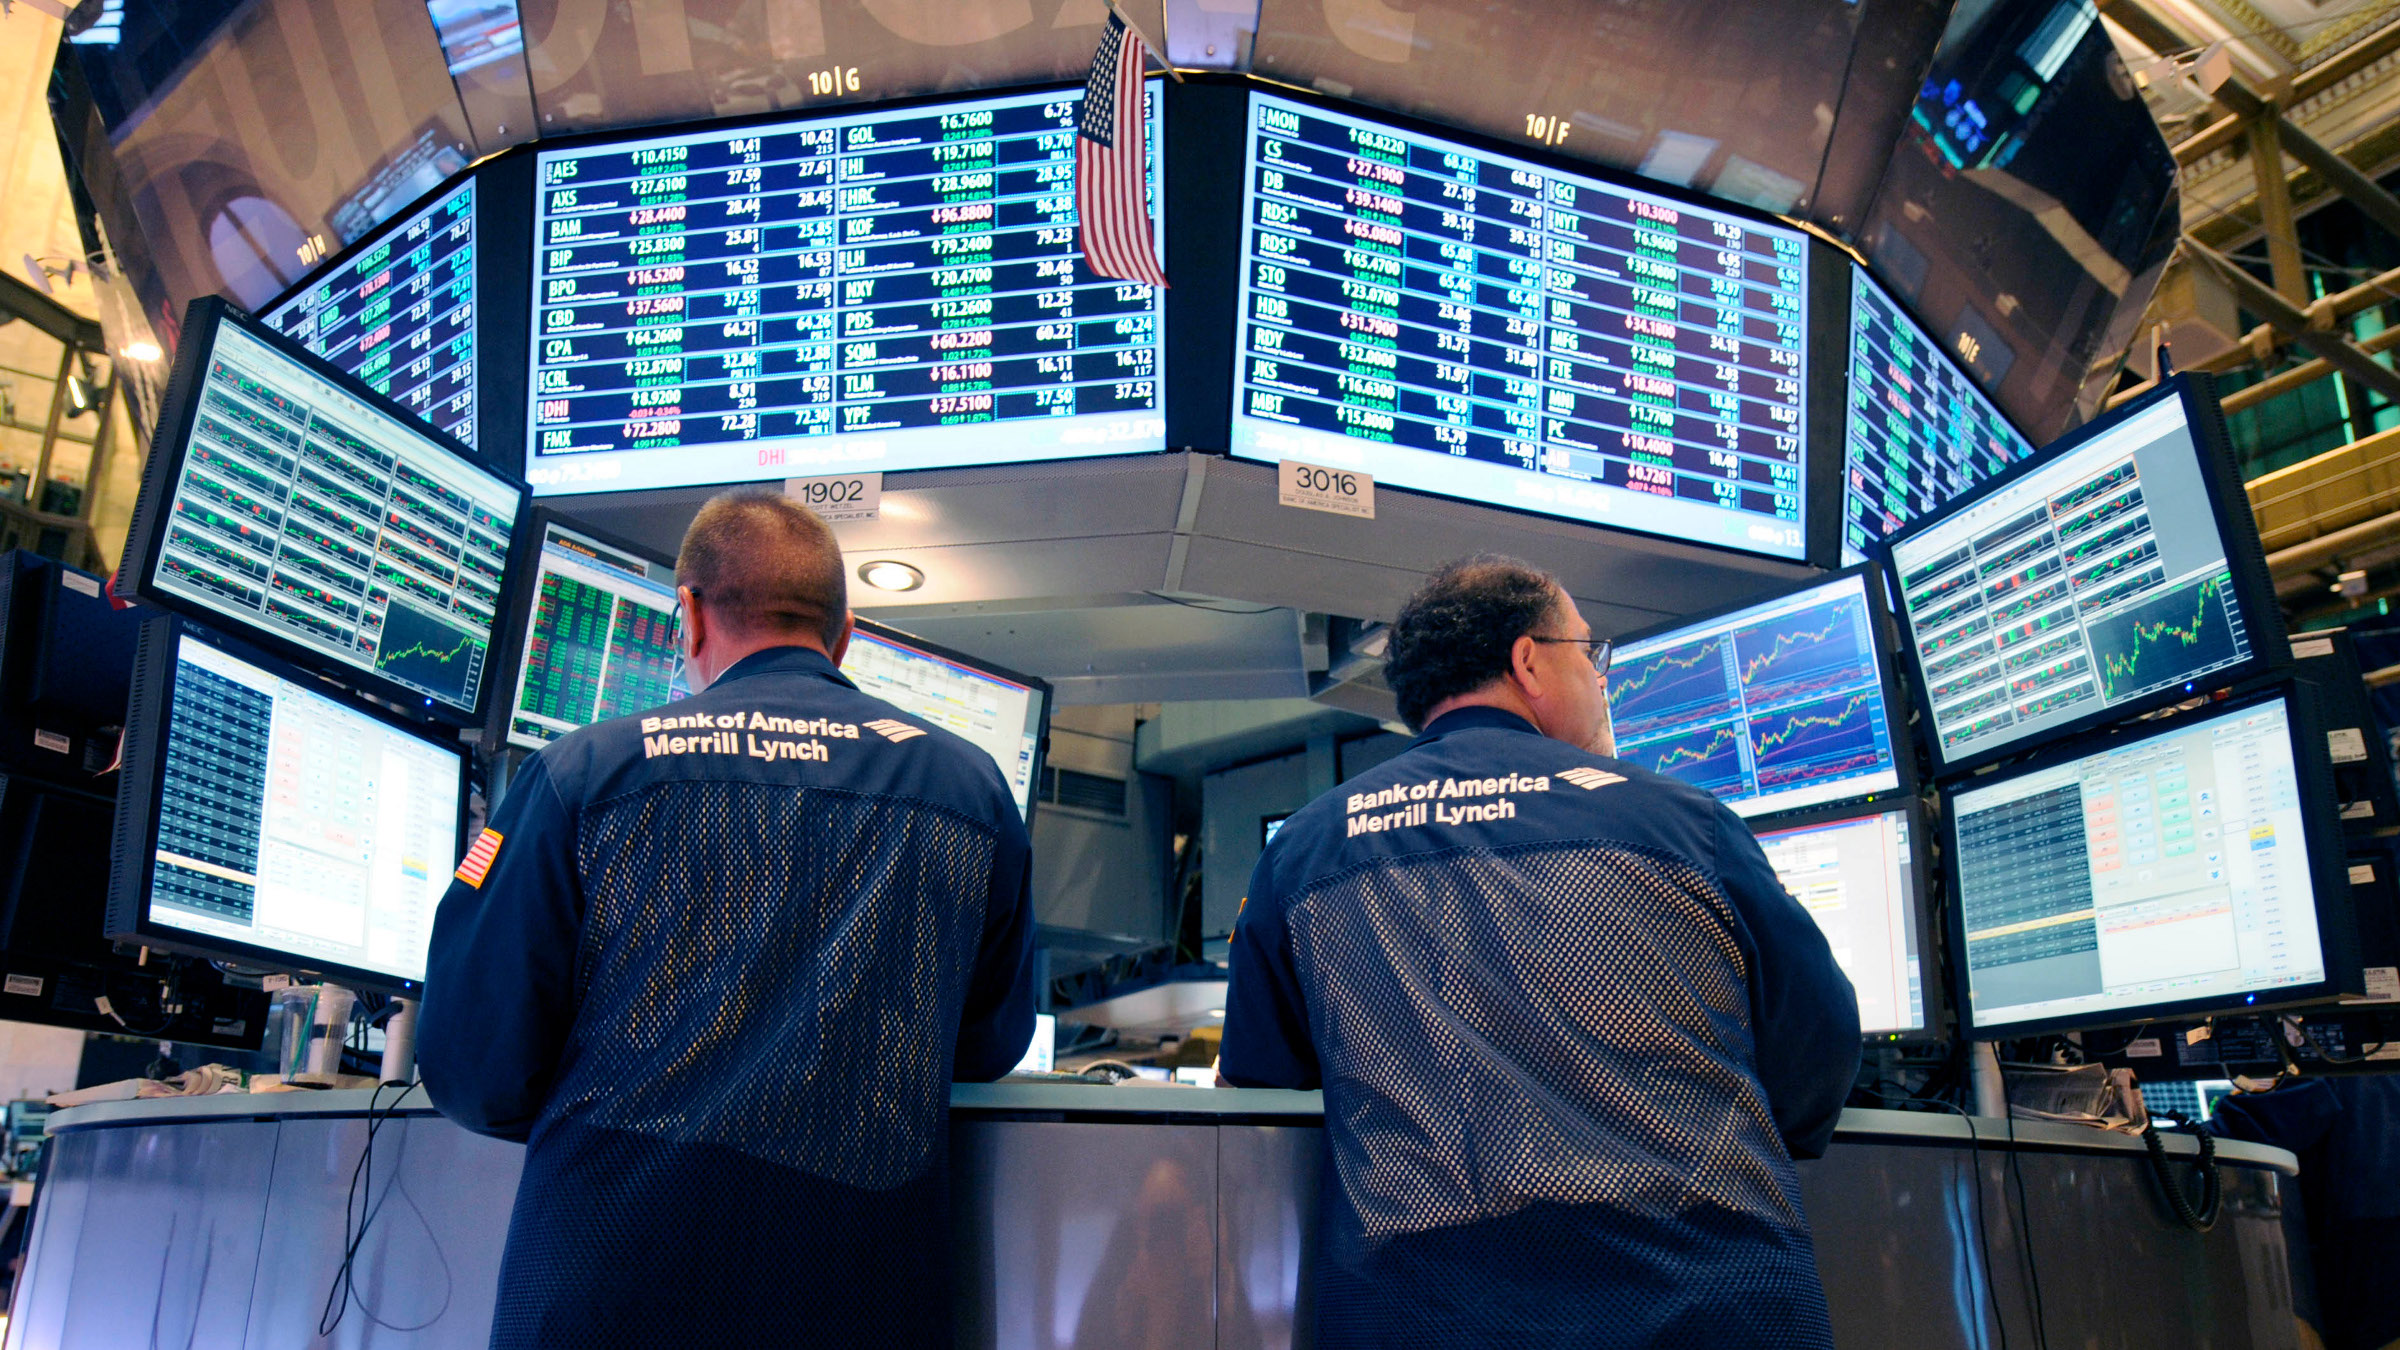 In this Tuesday, Aug. 23, 2011 file photo, Bank of America Merrill Lynch traders work on the floor of the New York Stock Exchange in New York. There are fewer and fewer traders on the NYSE floor because of the dominance of computer trading of securities - including the high-frequency trading that can take advantage of price changes in a millisecond. Bank of America is the stock of the moment for high-frequency trading; investors use computer algorithms to exploit small changes in a stock's price. If a computer can seize on a stock like Bank of America a fraction of a second faster than the rest of the market, it can book a tiny profit.